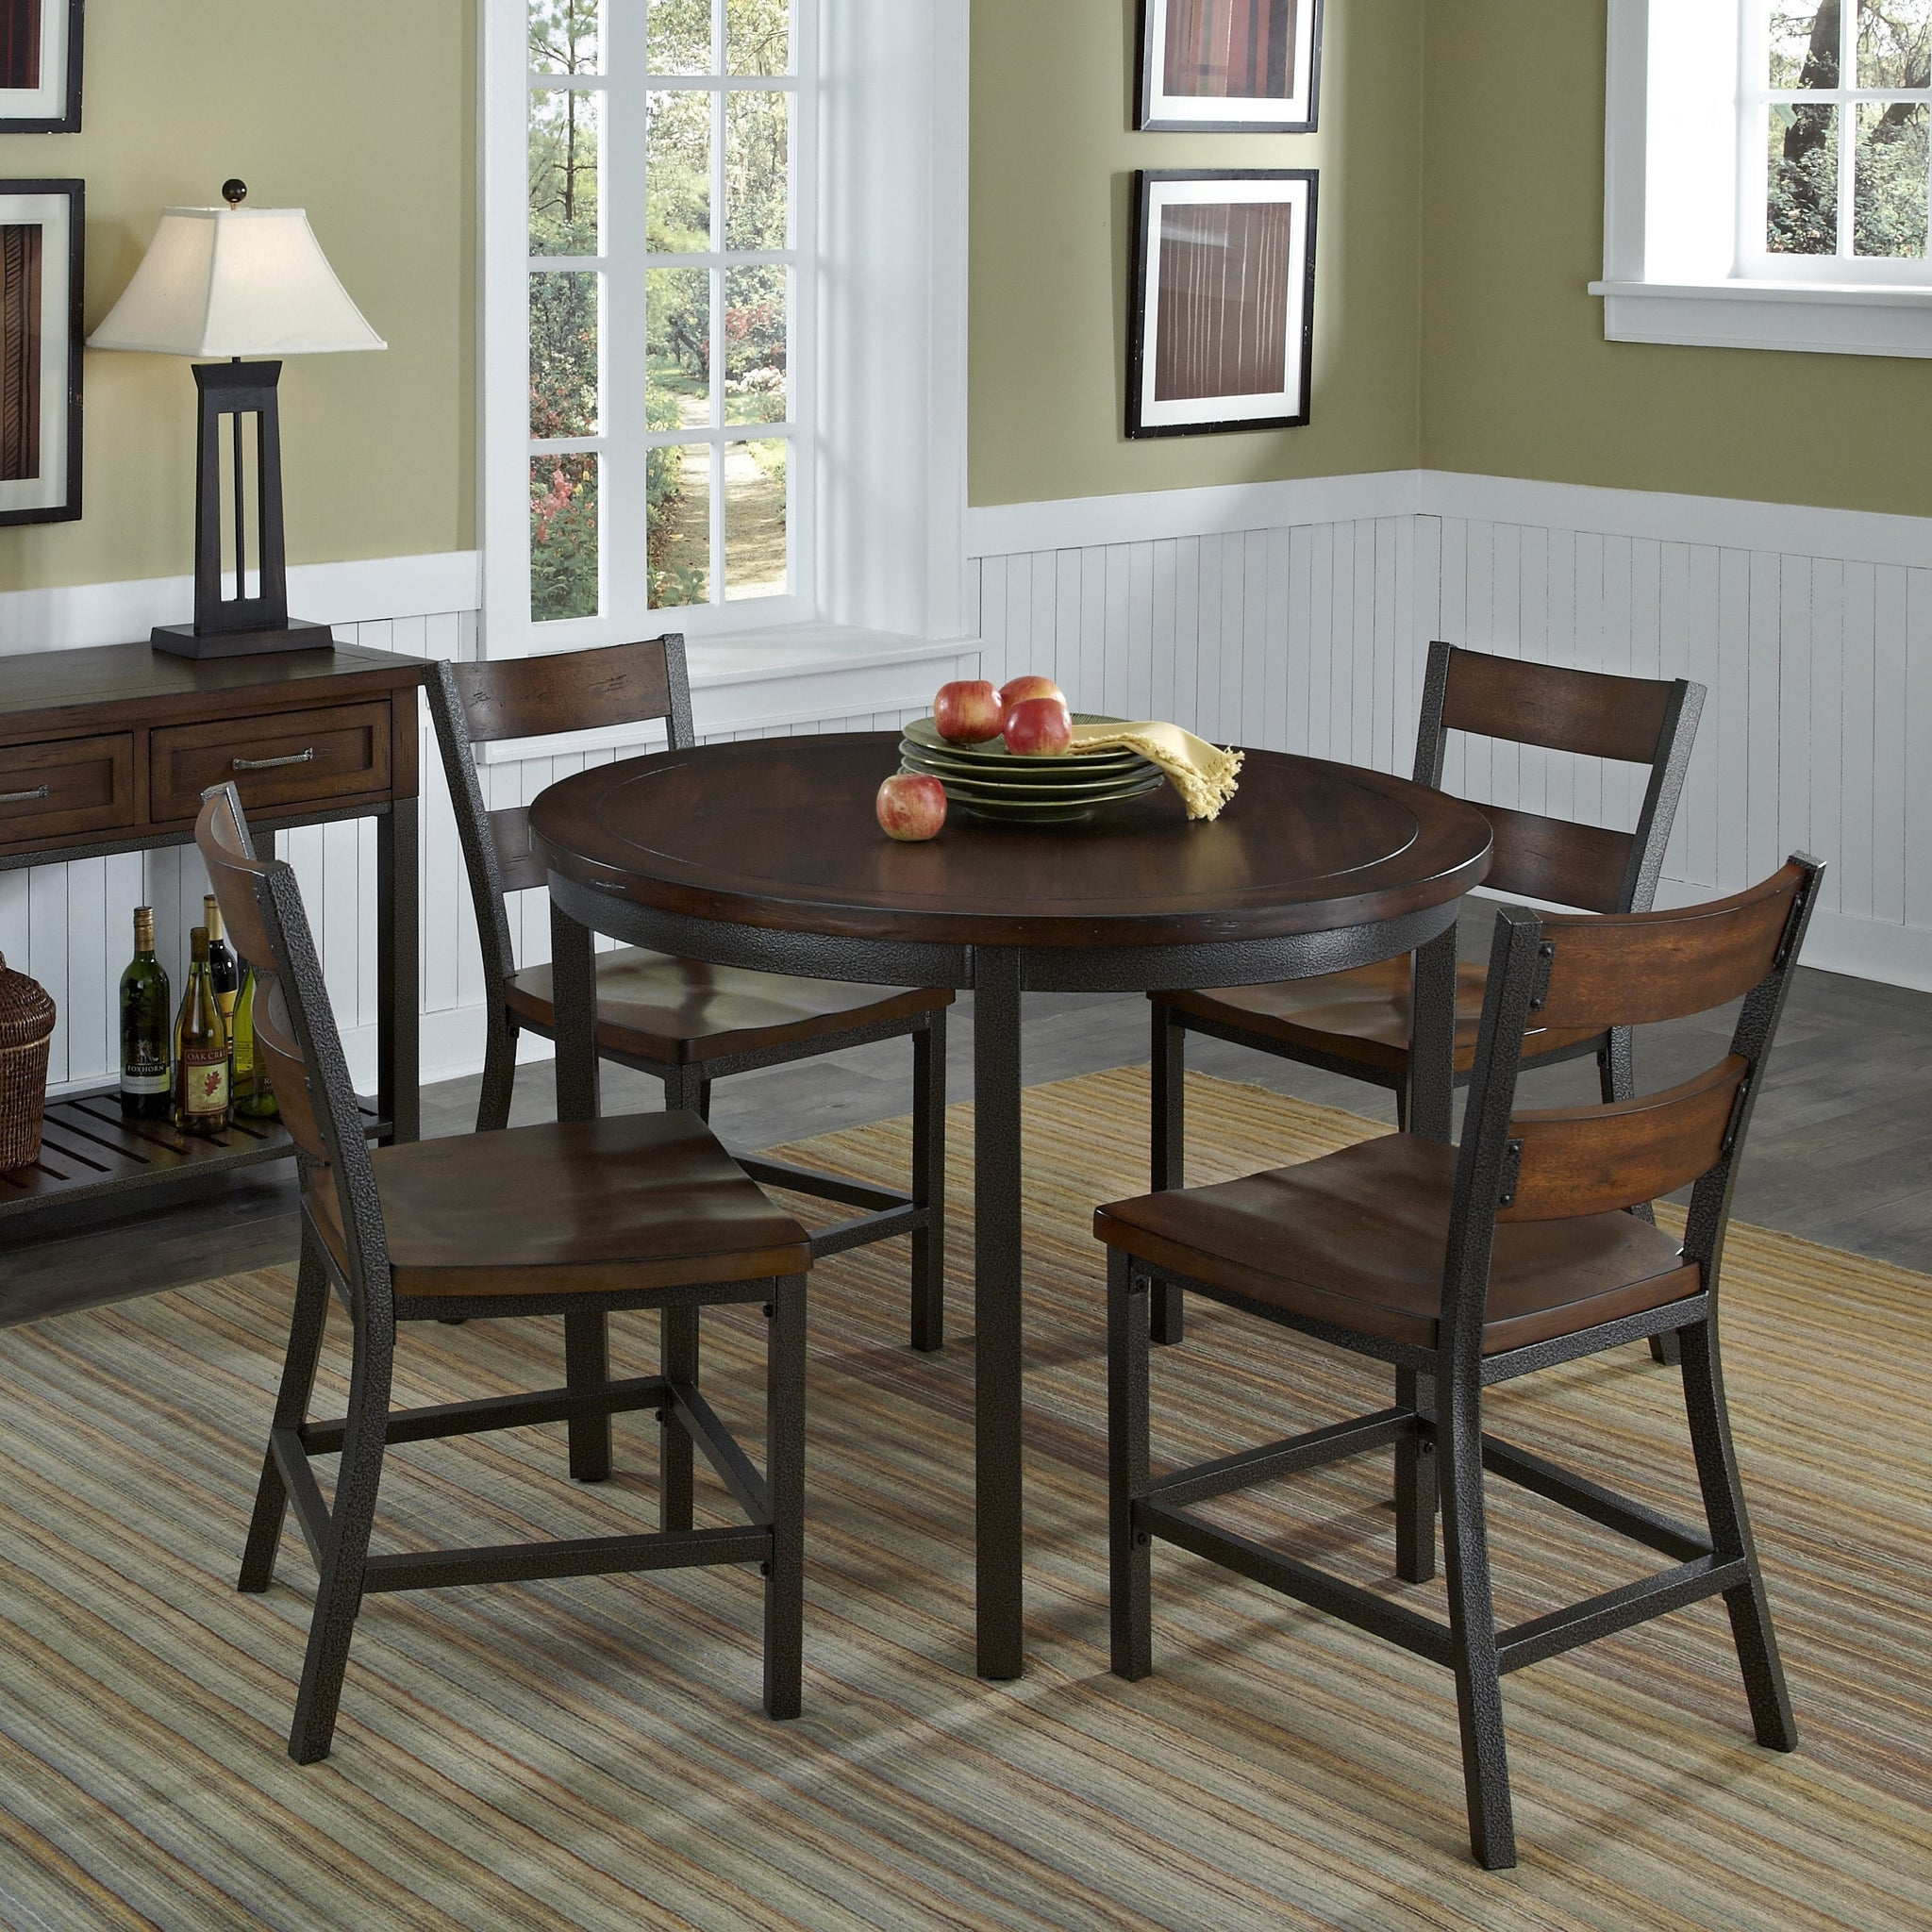 Five-Piece Modern Dining Set